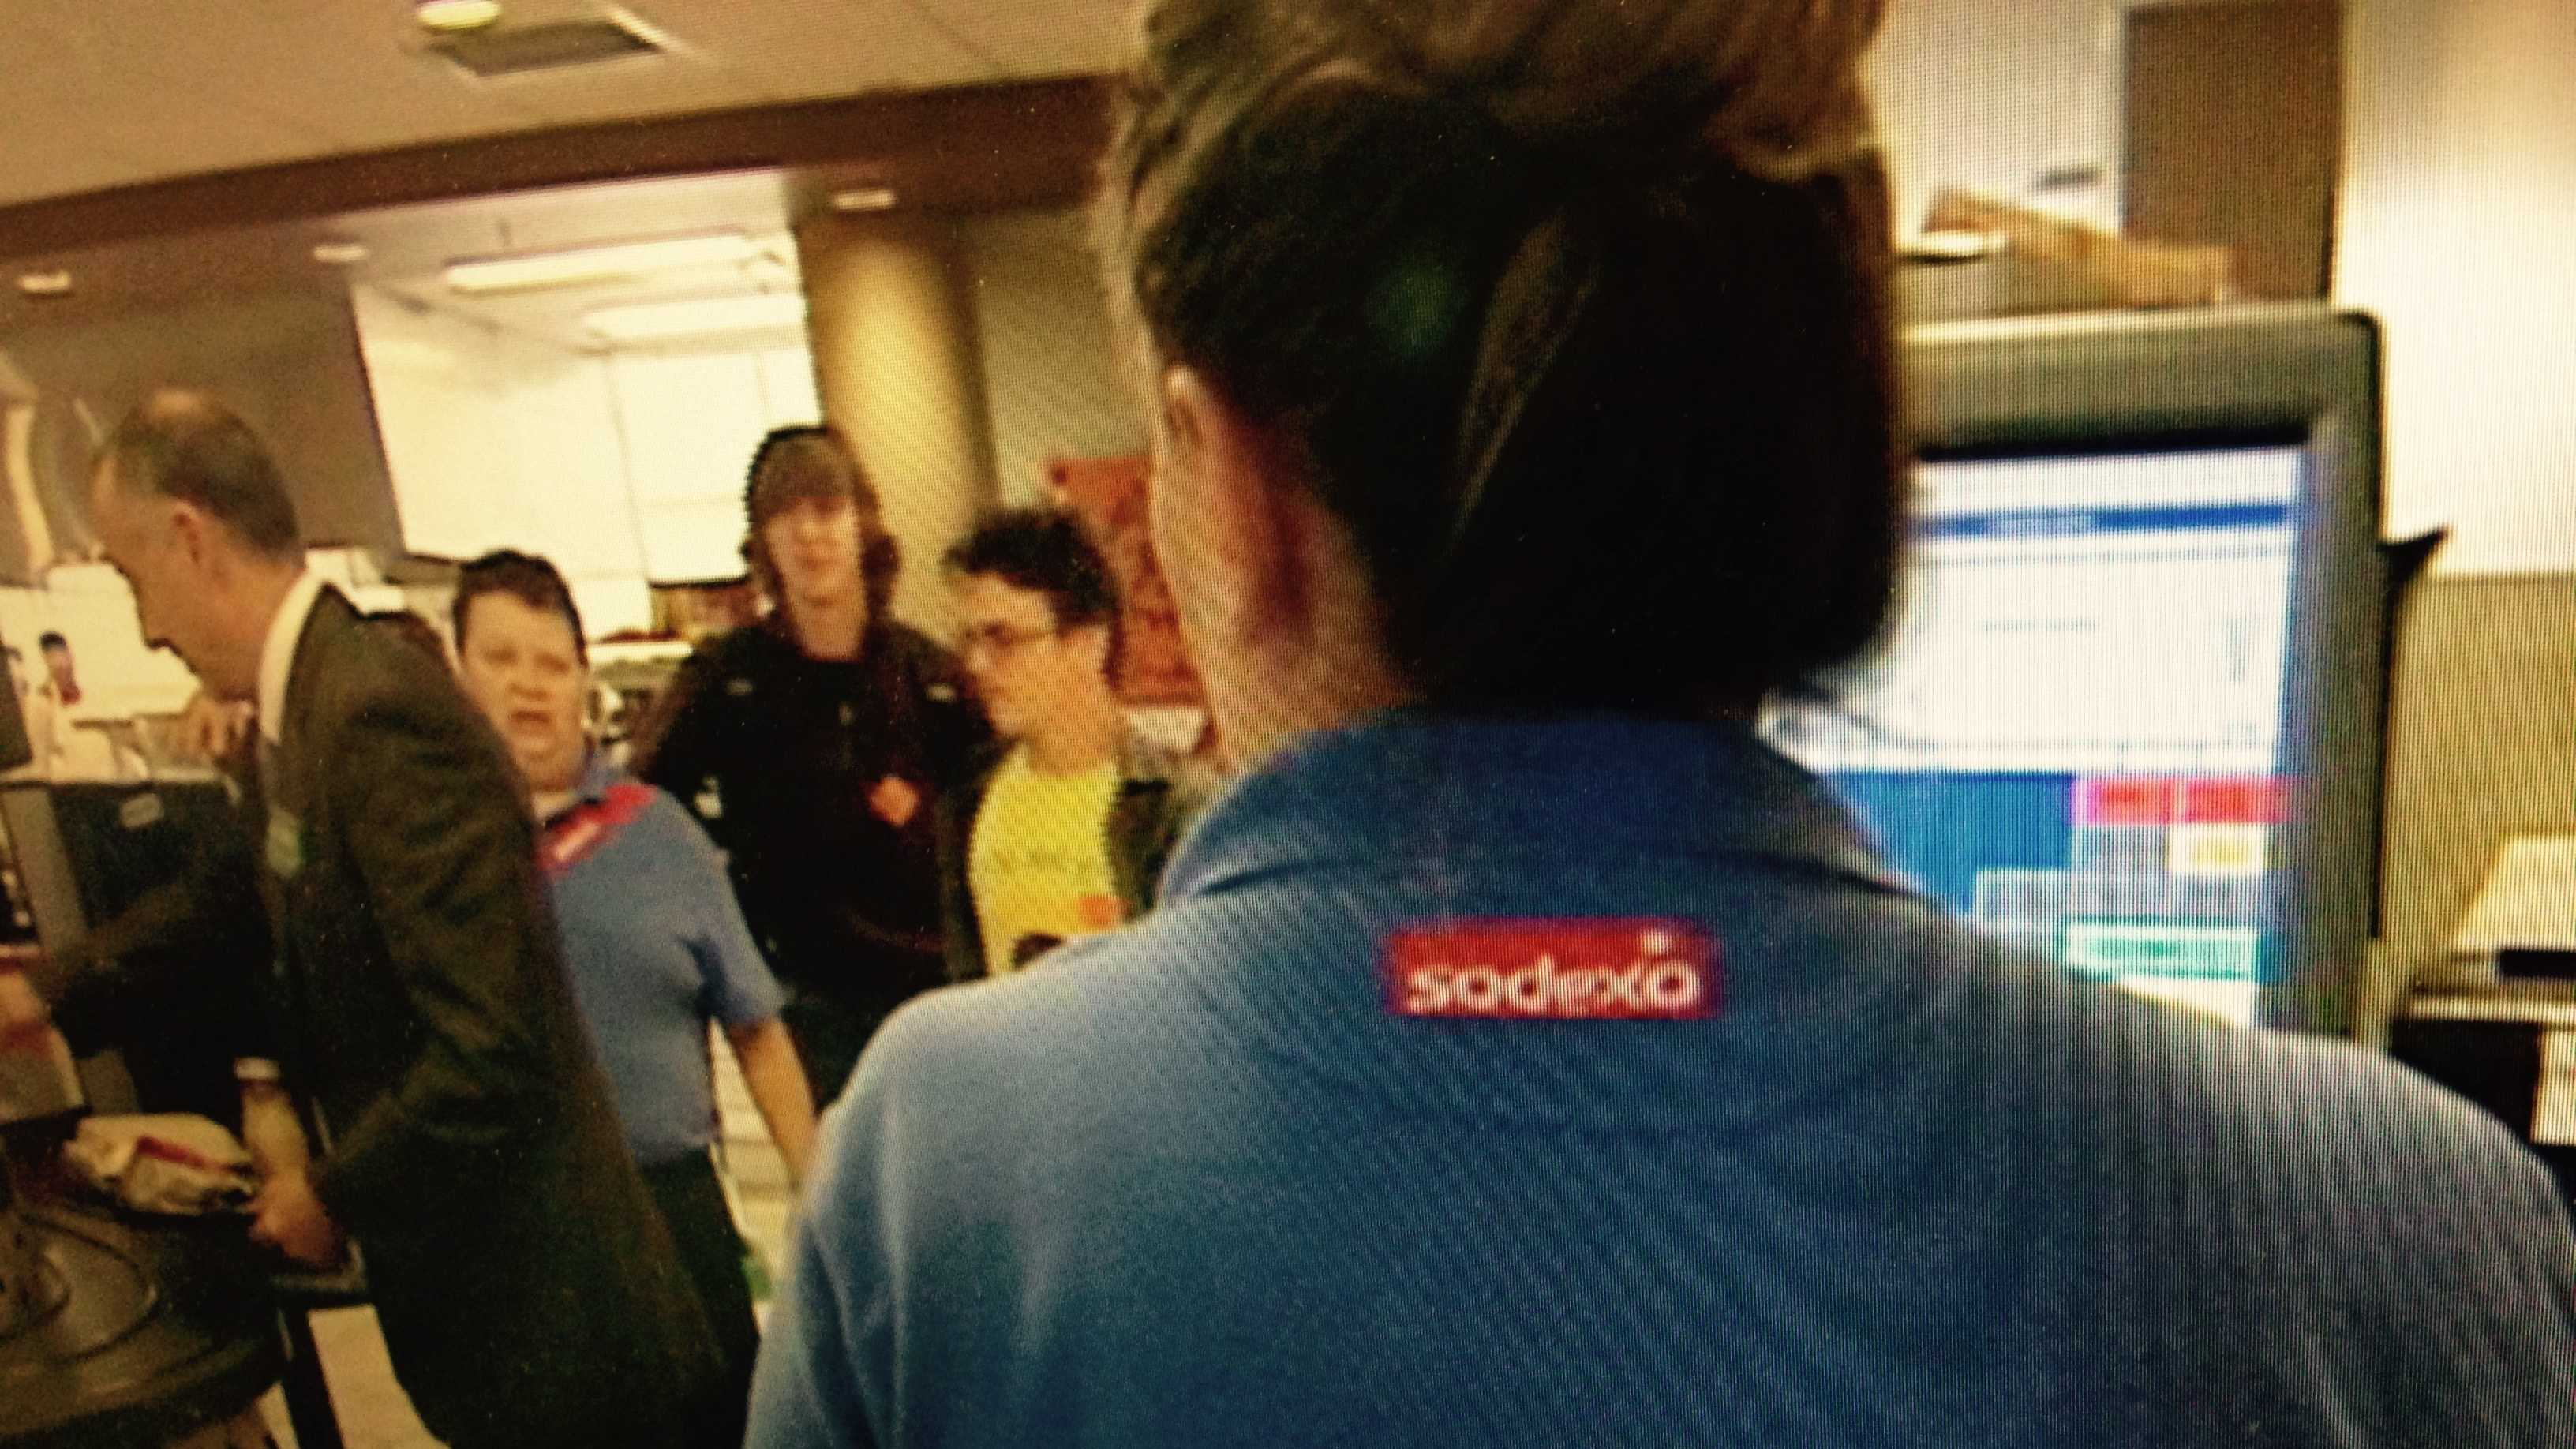 Sodexo staffers at the cafeteria at the University of Vermont Davis Center.